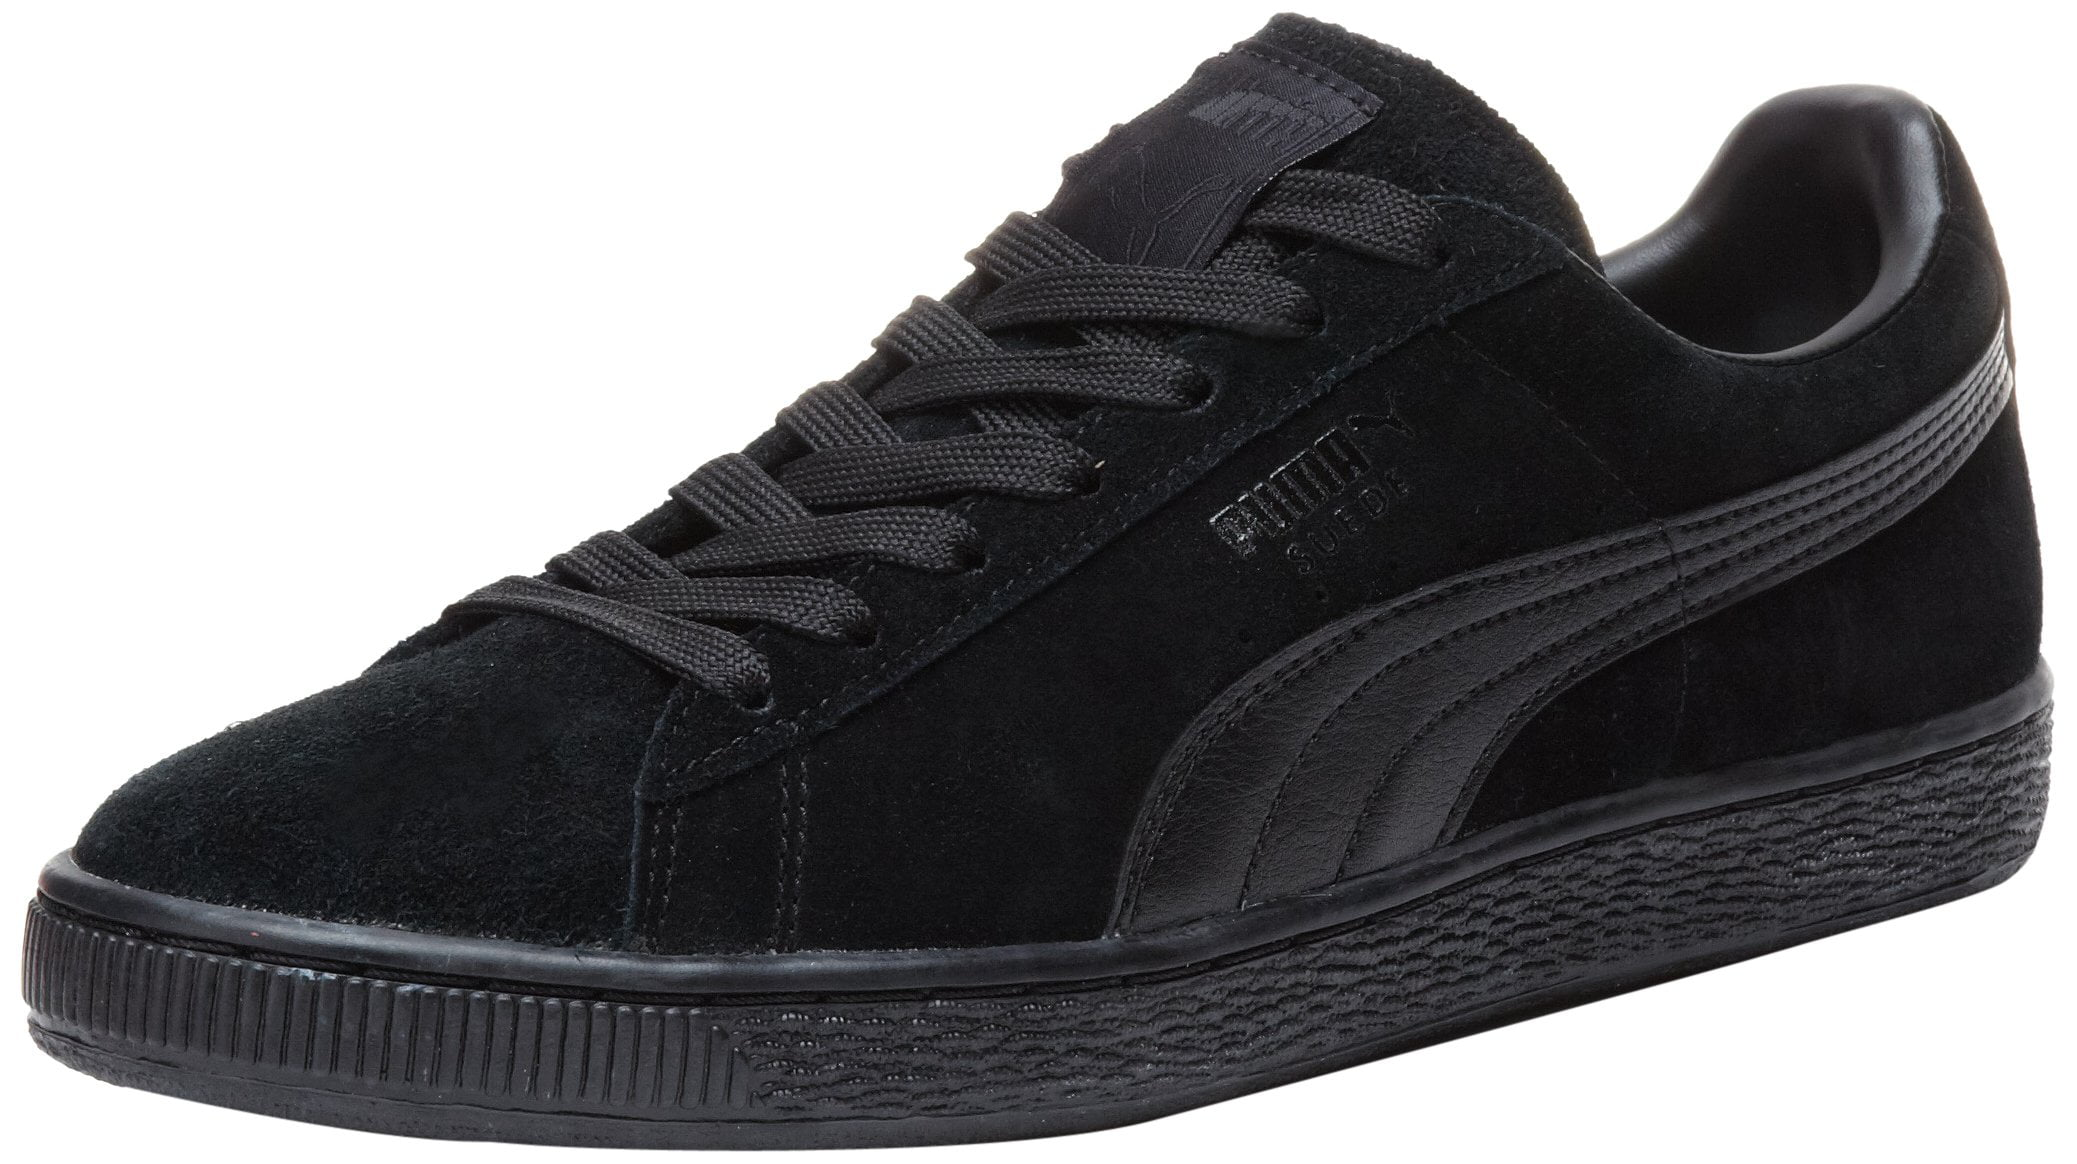 PUMA 356328-01: Suede Classic Black Black Leather Formstrip Sneaker (13 D(M) US) by PUMA Footwear